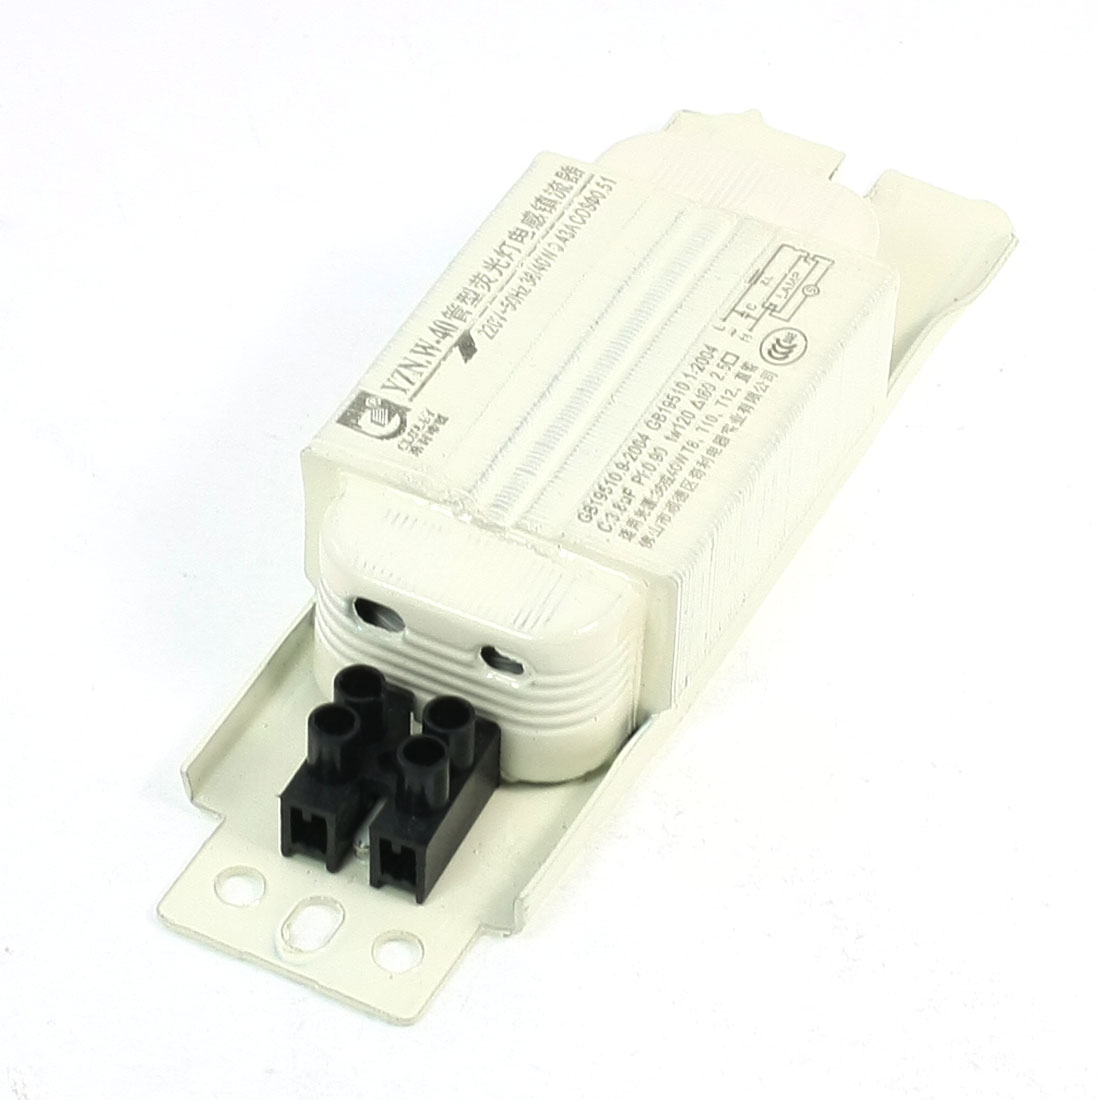 AC 220V 0.43A 40W Fluorescent Lamp Ballast for 36W/40W T8 T10 T12 Light Tube